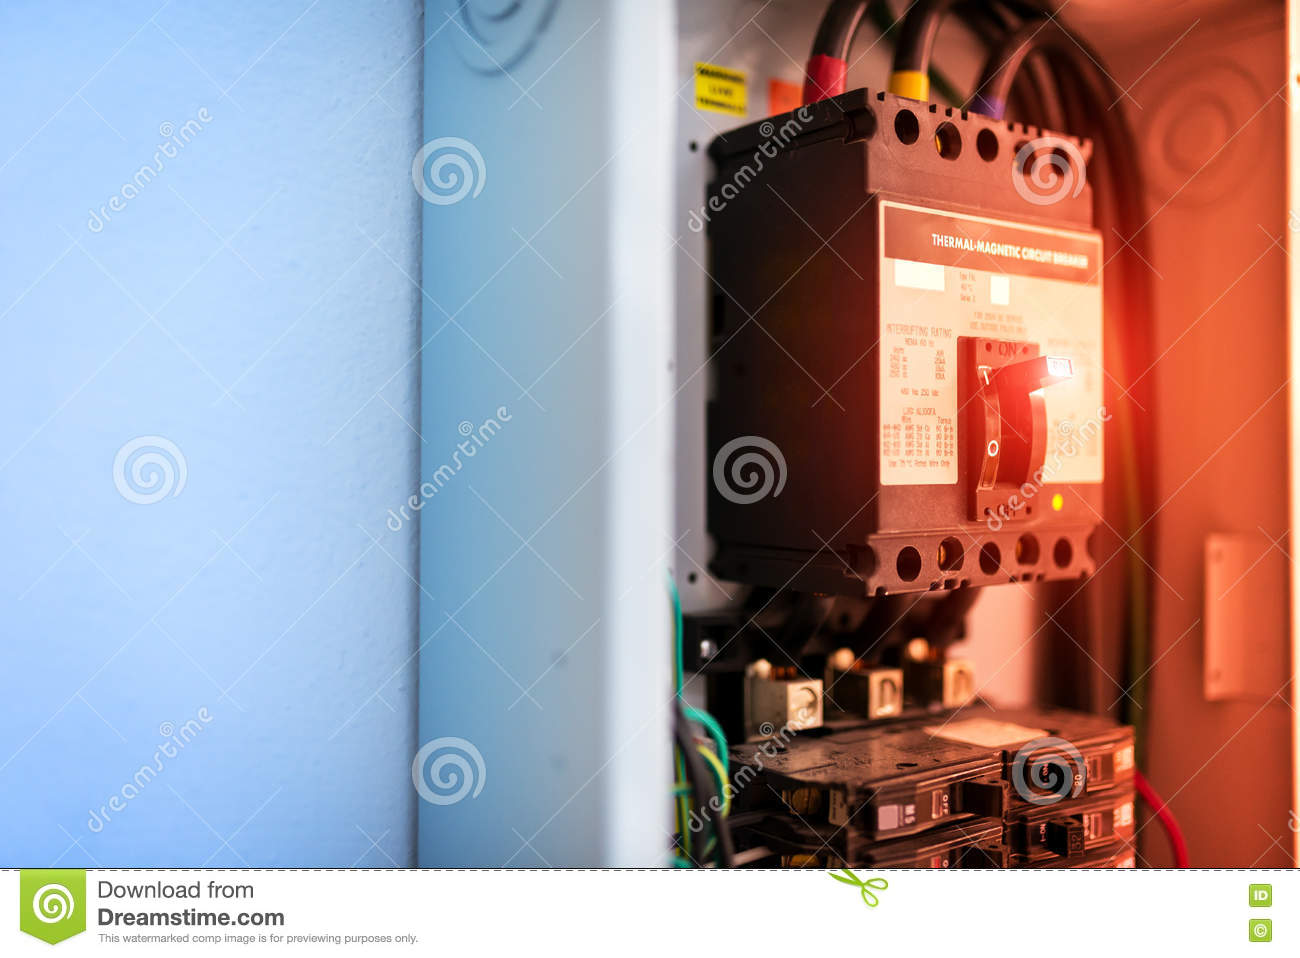 Electric Outdoor Fuse Box In Soft Light Stock Photo - Image ... on